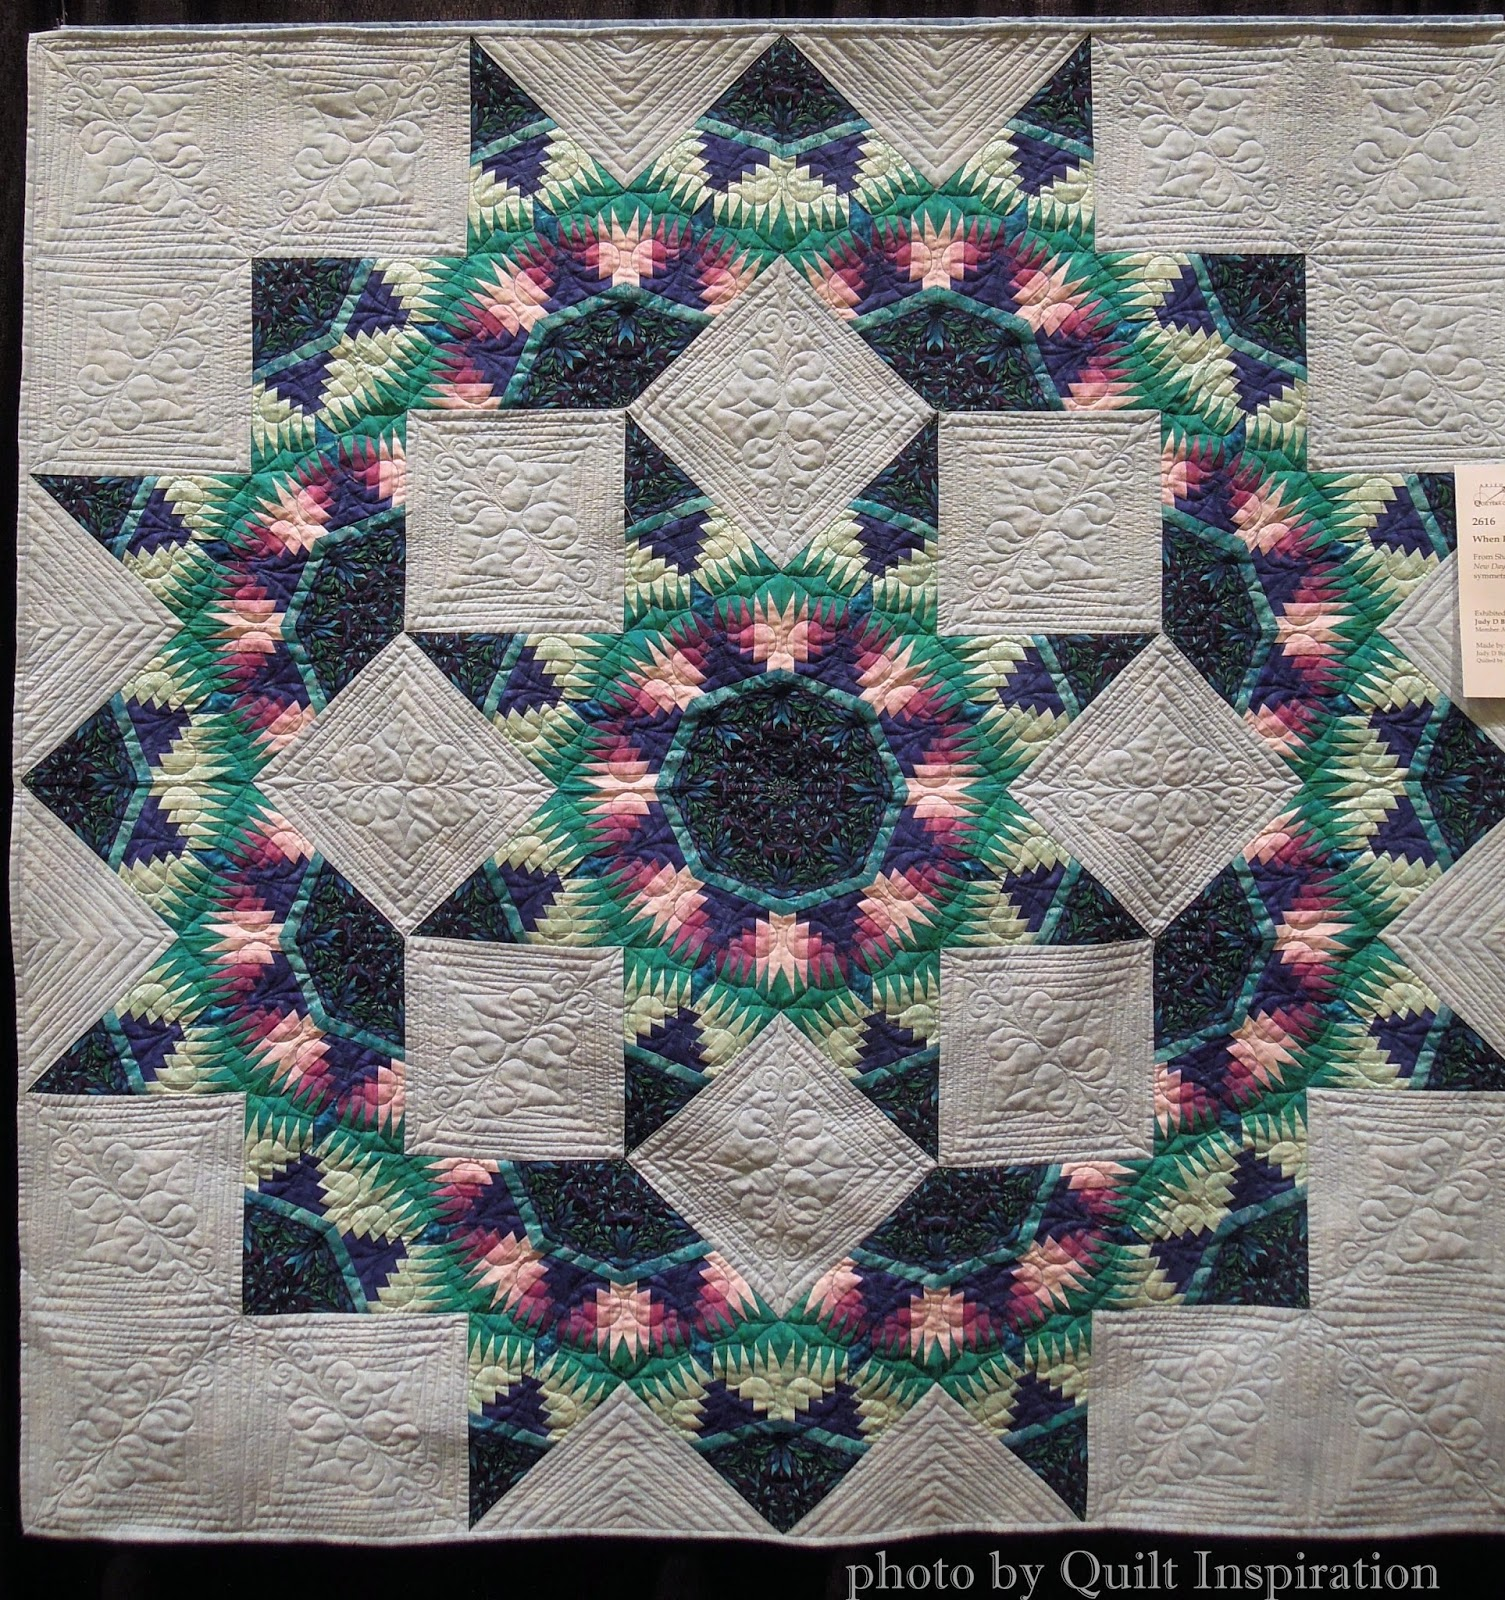 Pineapple delight: Pineapple log cabin quilts! | Quilt Inspiration ... : lone star log cabin quilt pattern - Adamdwight.com